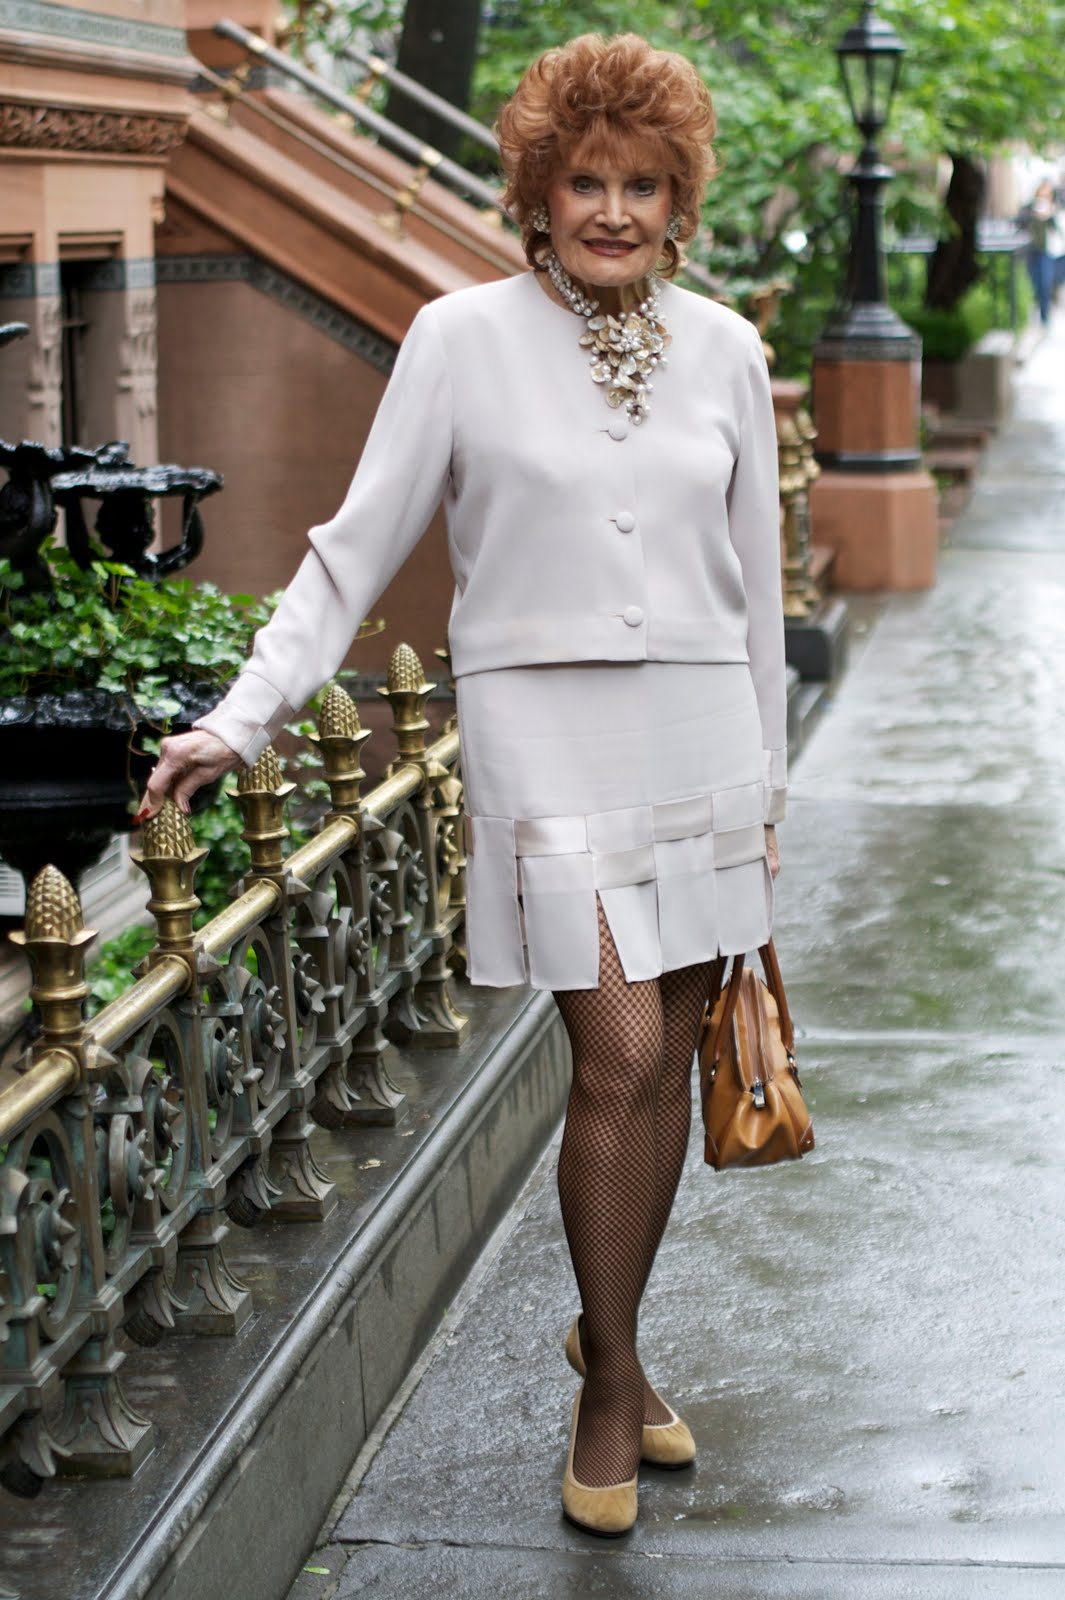 90 Year Old Fashionista Edith Drake Advanced Style